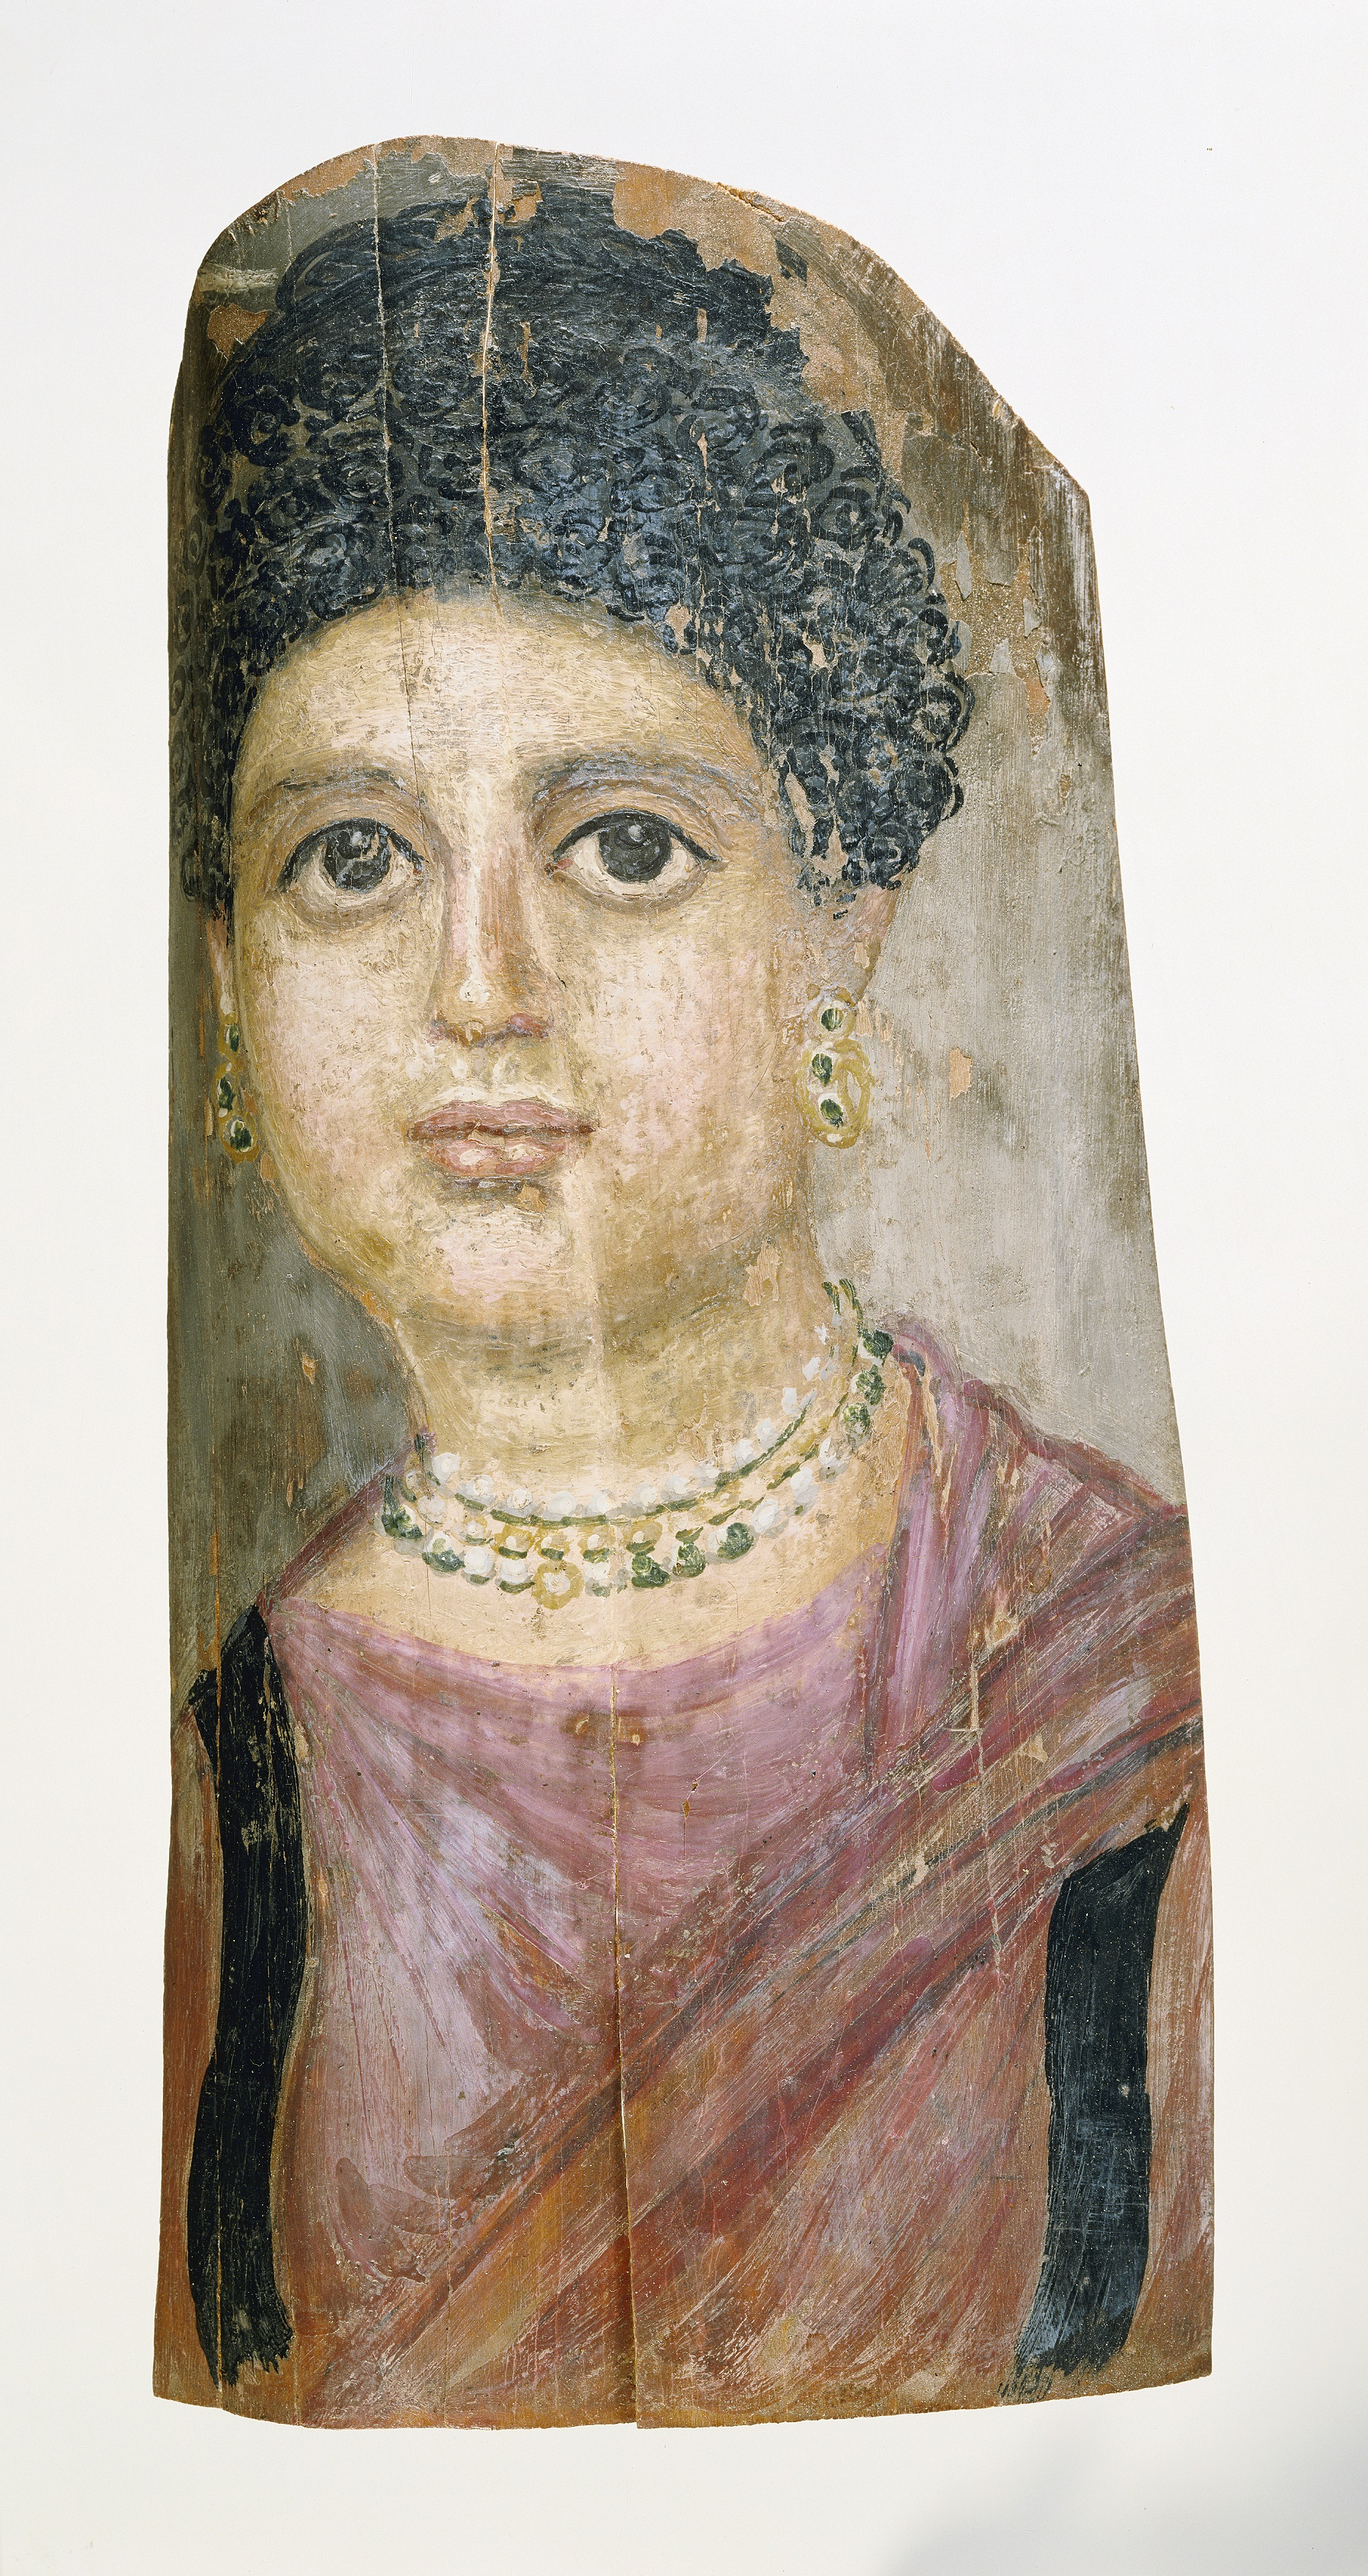 From http://www.getty.edu/art/collection/objects/7078/attributed-to-malibu-painter-mummy-portrait-romano-egyptian-75-100/